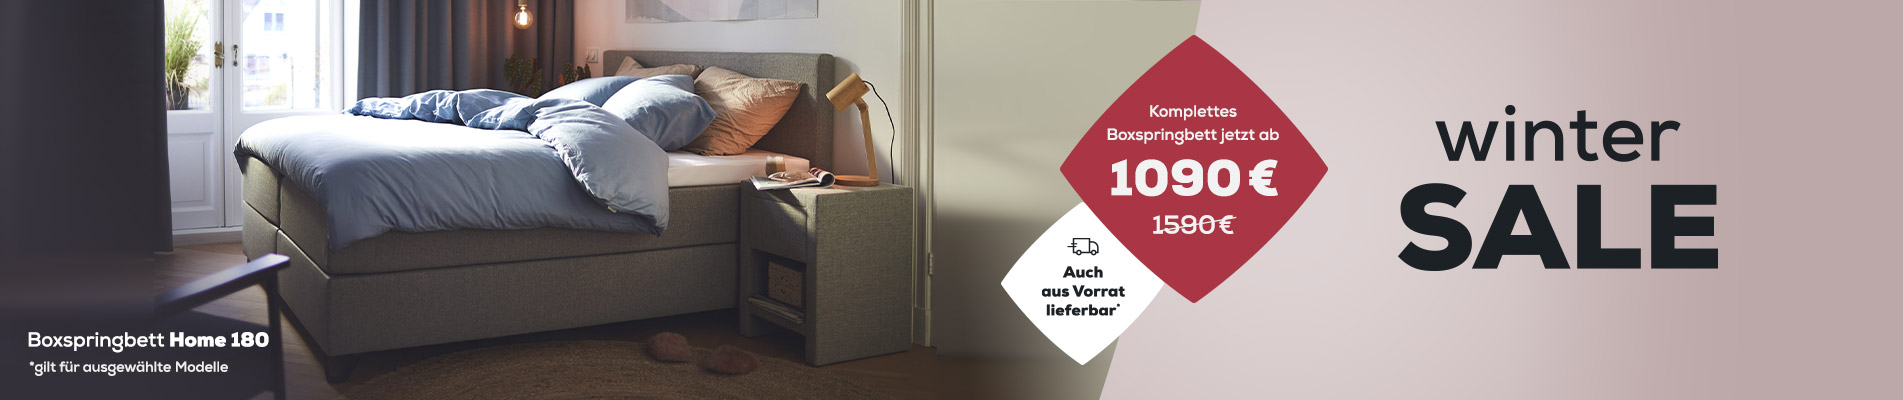 Boxspringbett Home 180 j| Winter Sale | Swiss  Sense